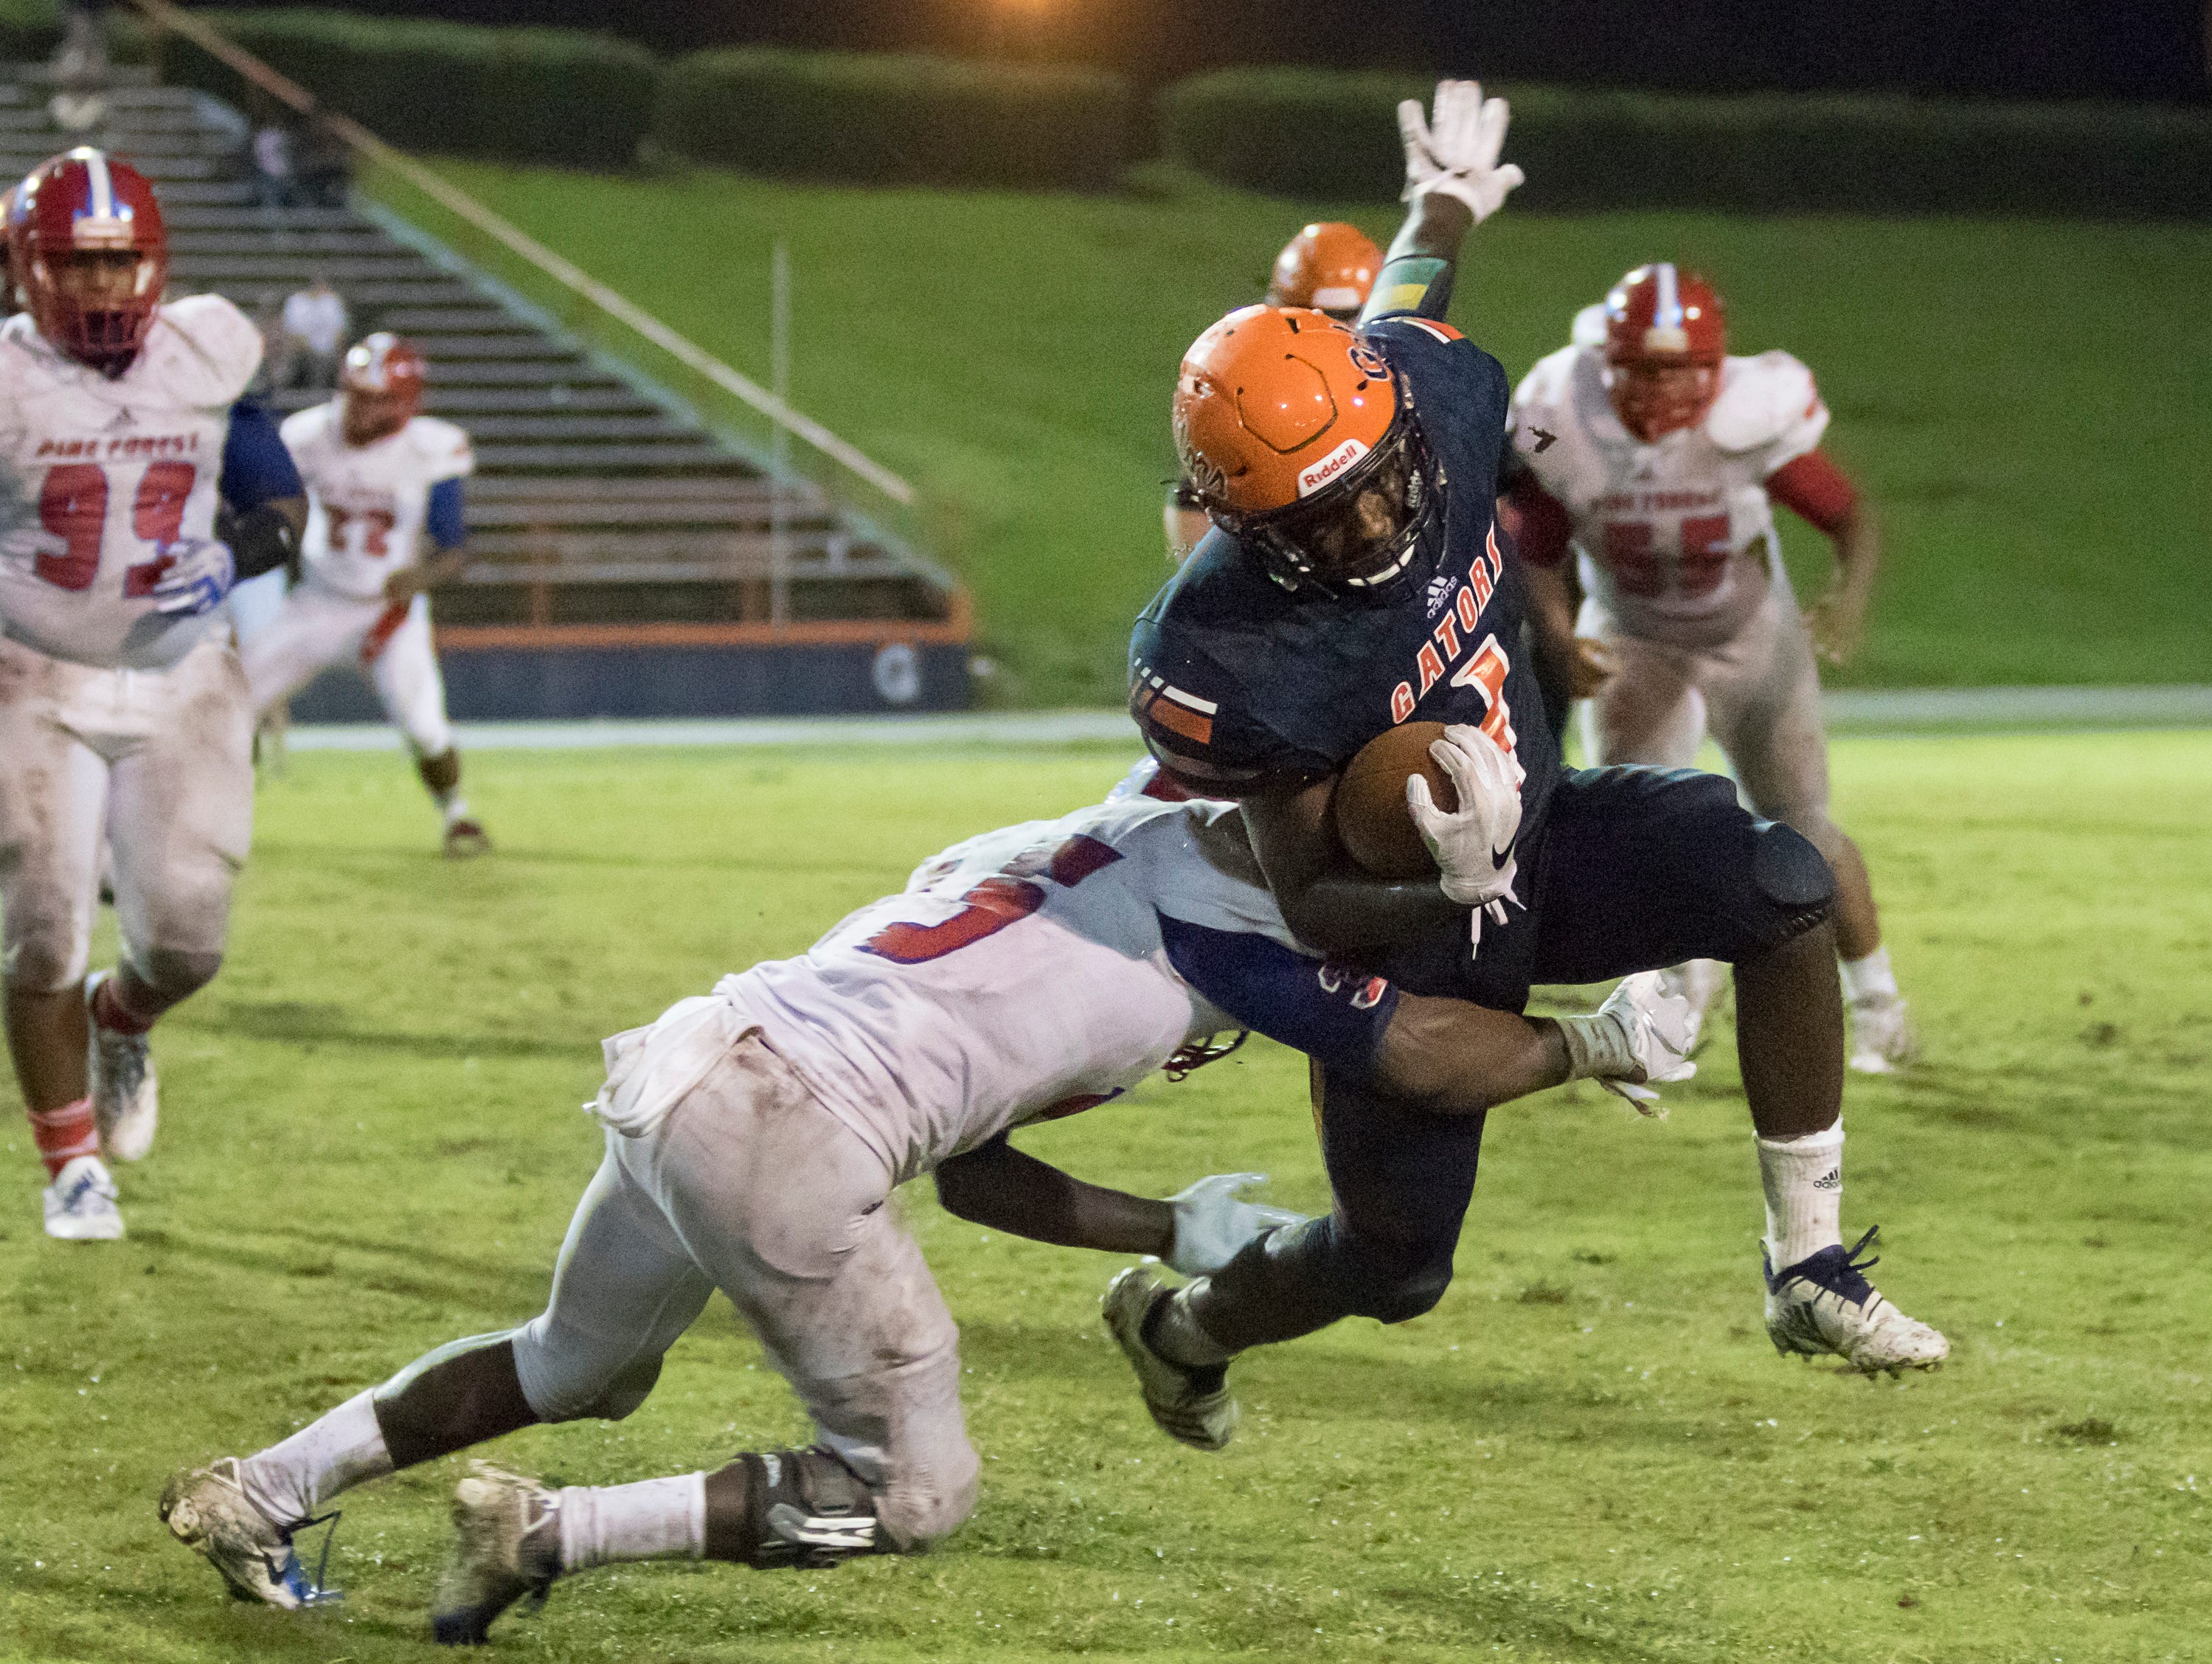 Mitrez Rawls (15) brings down Frank Peasent (1) during the Pine Forest vs Escambia football game at Escambia High School in Pensacola on Friday, September 28, 2018.